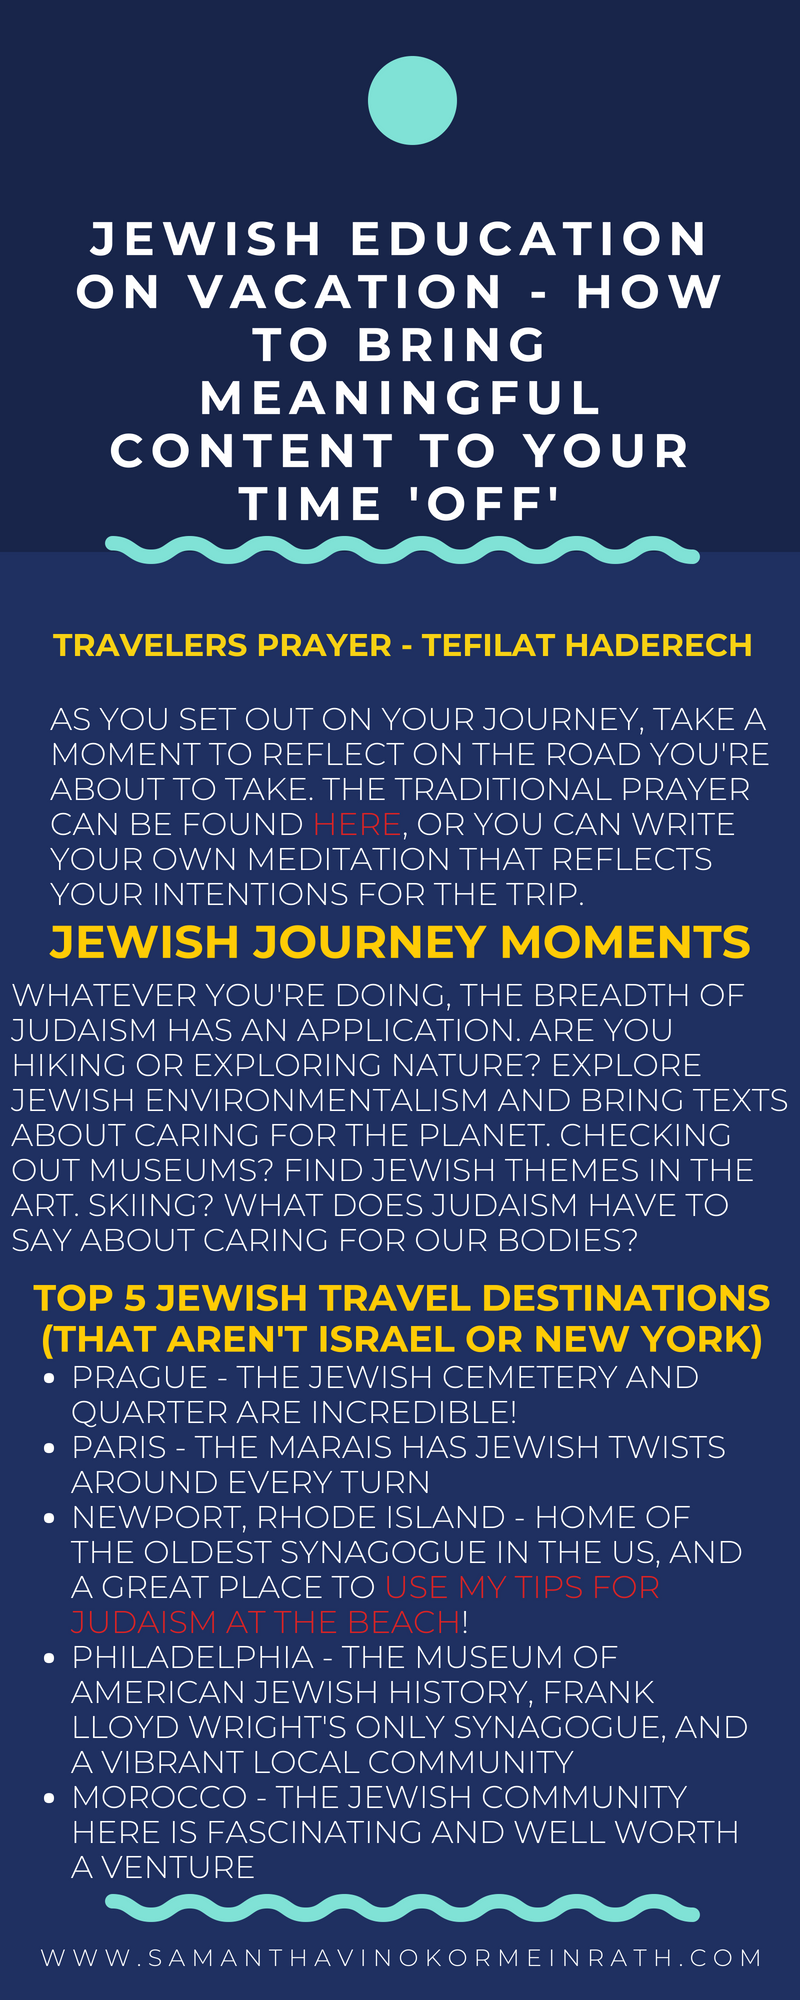 Jewish education on vacation